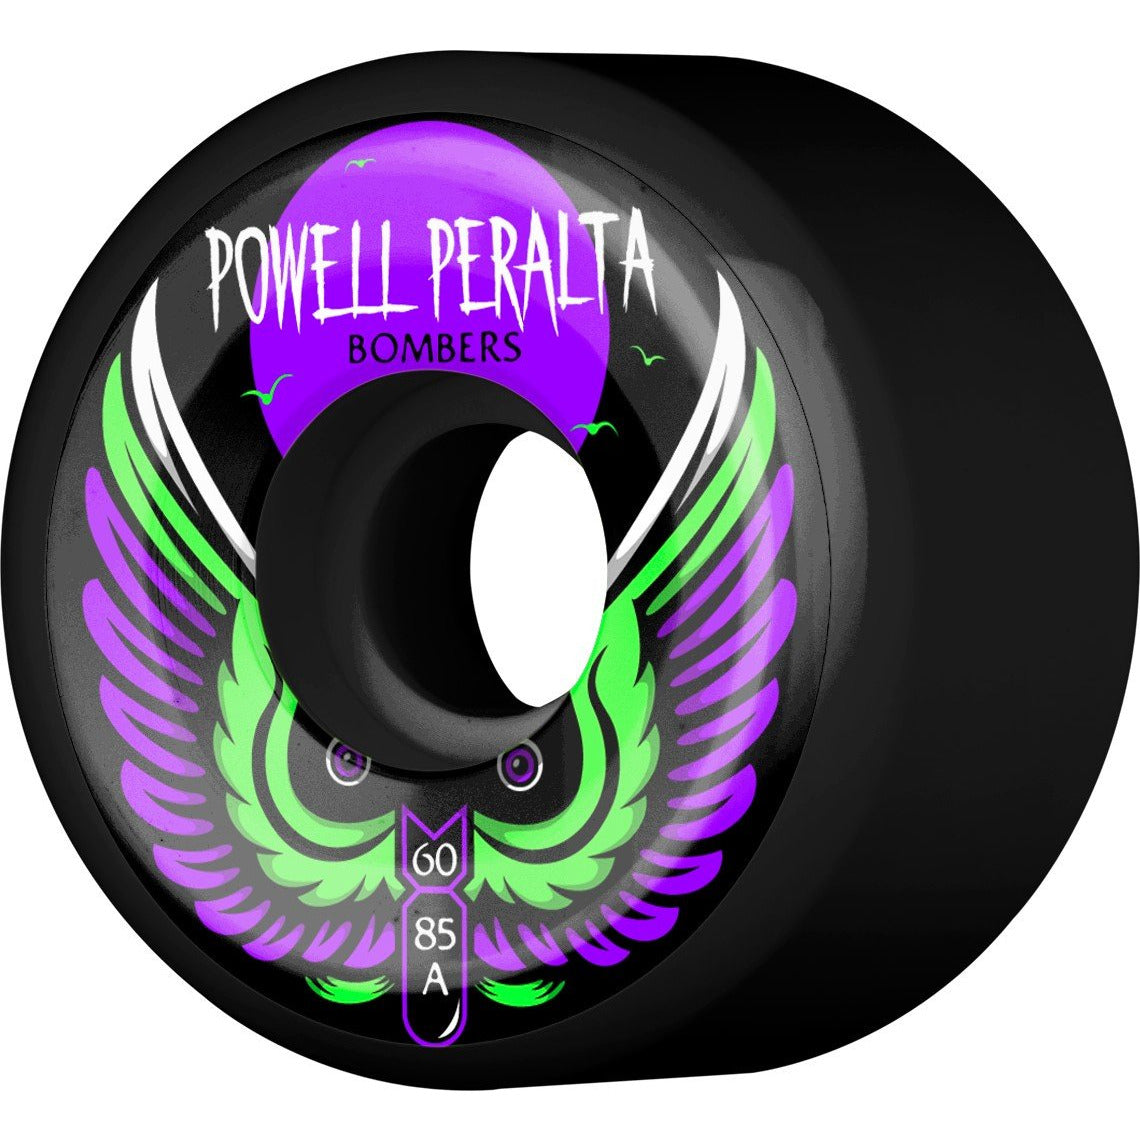 Powell Peralta Bomber Wheels Black 60mm X 85a